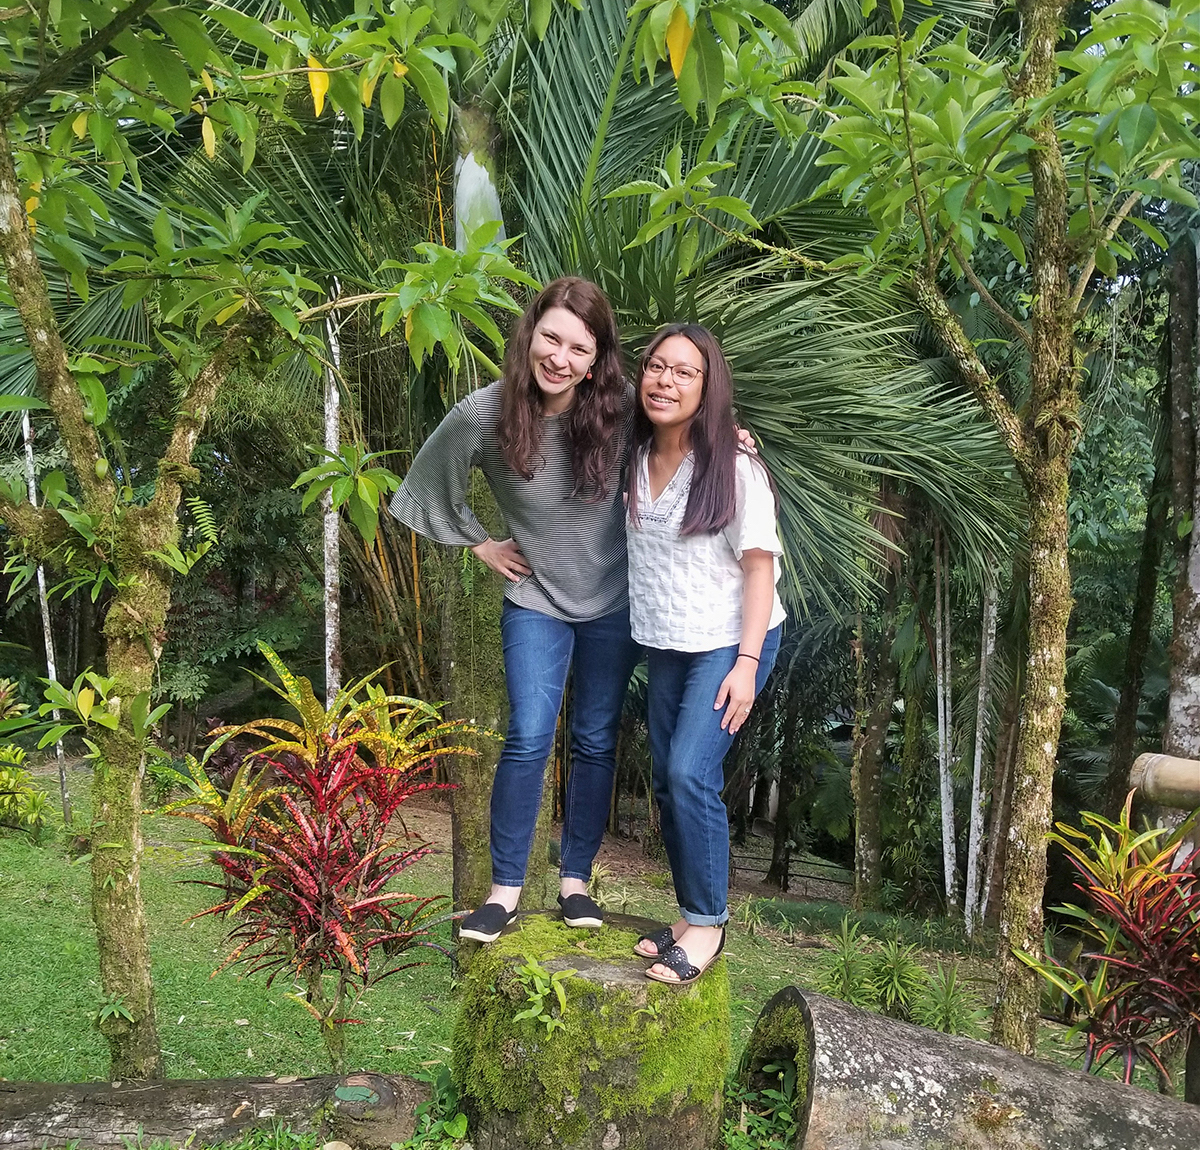 Mentor Lindsey Swierk, a faculty member at Binghamton University in New York, and MTSU senior biology major Denise Ortega studied the behavior of a water anole lizard endemic to Costa Rica for three months in 2019. Ortega is among more than 400 U.S. students to receive a prestigious Goldwater Scholarship for up to $7,500. (Submitted photo)